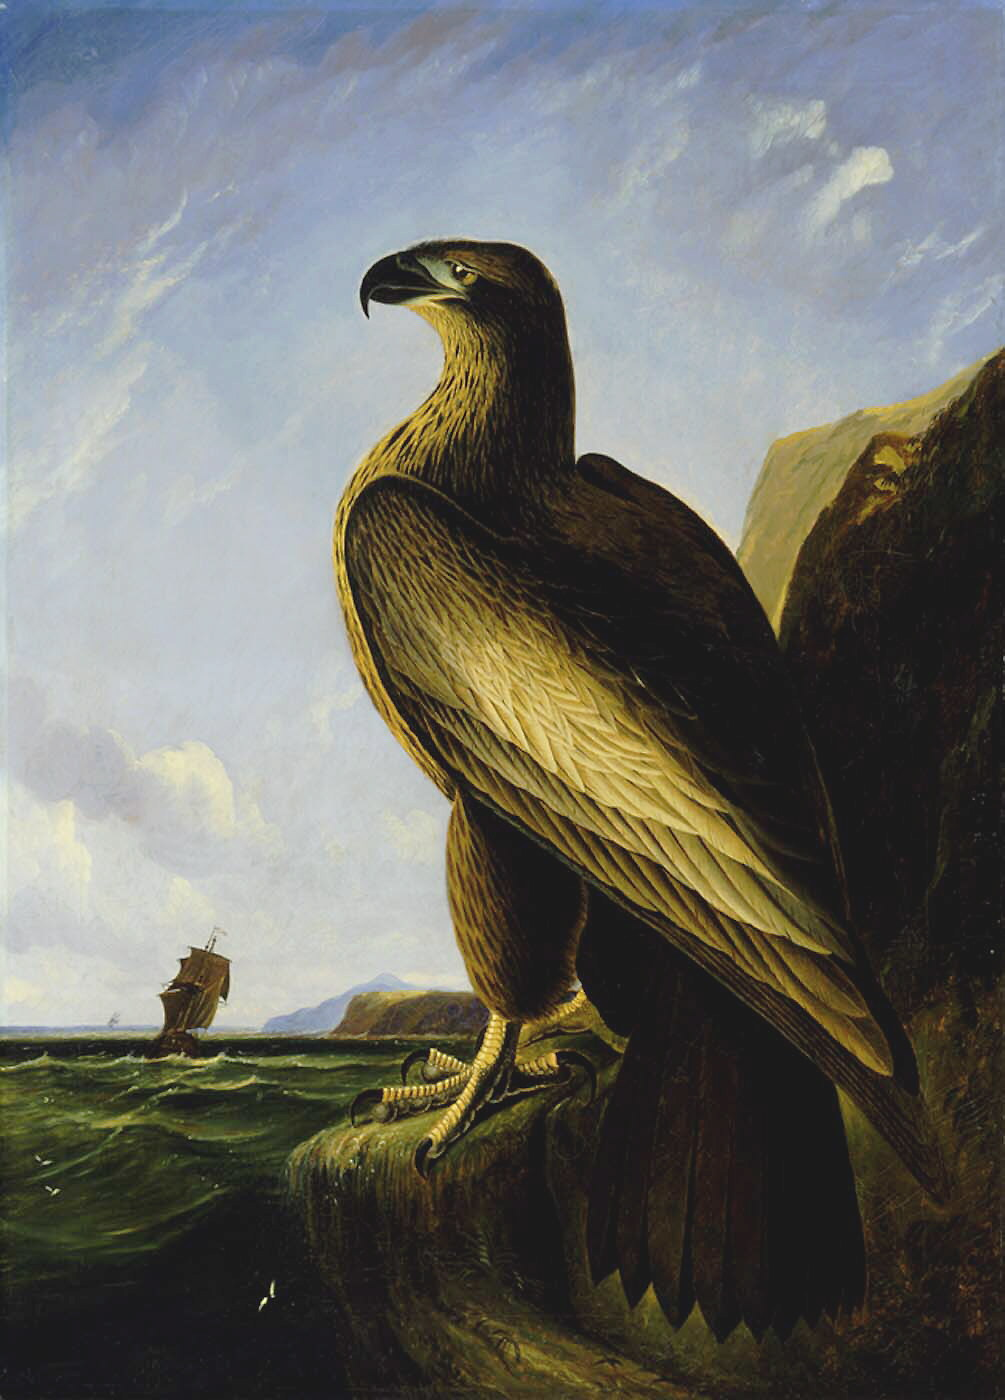 Washington's eagle